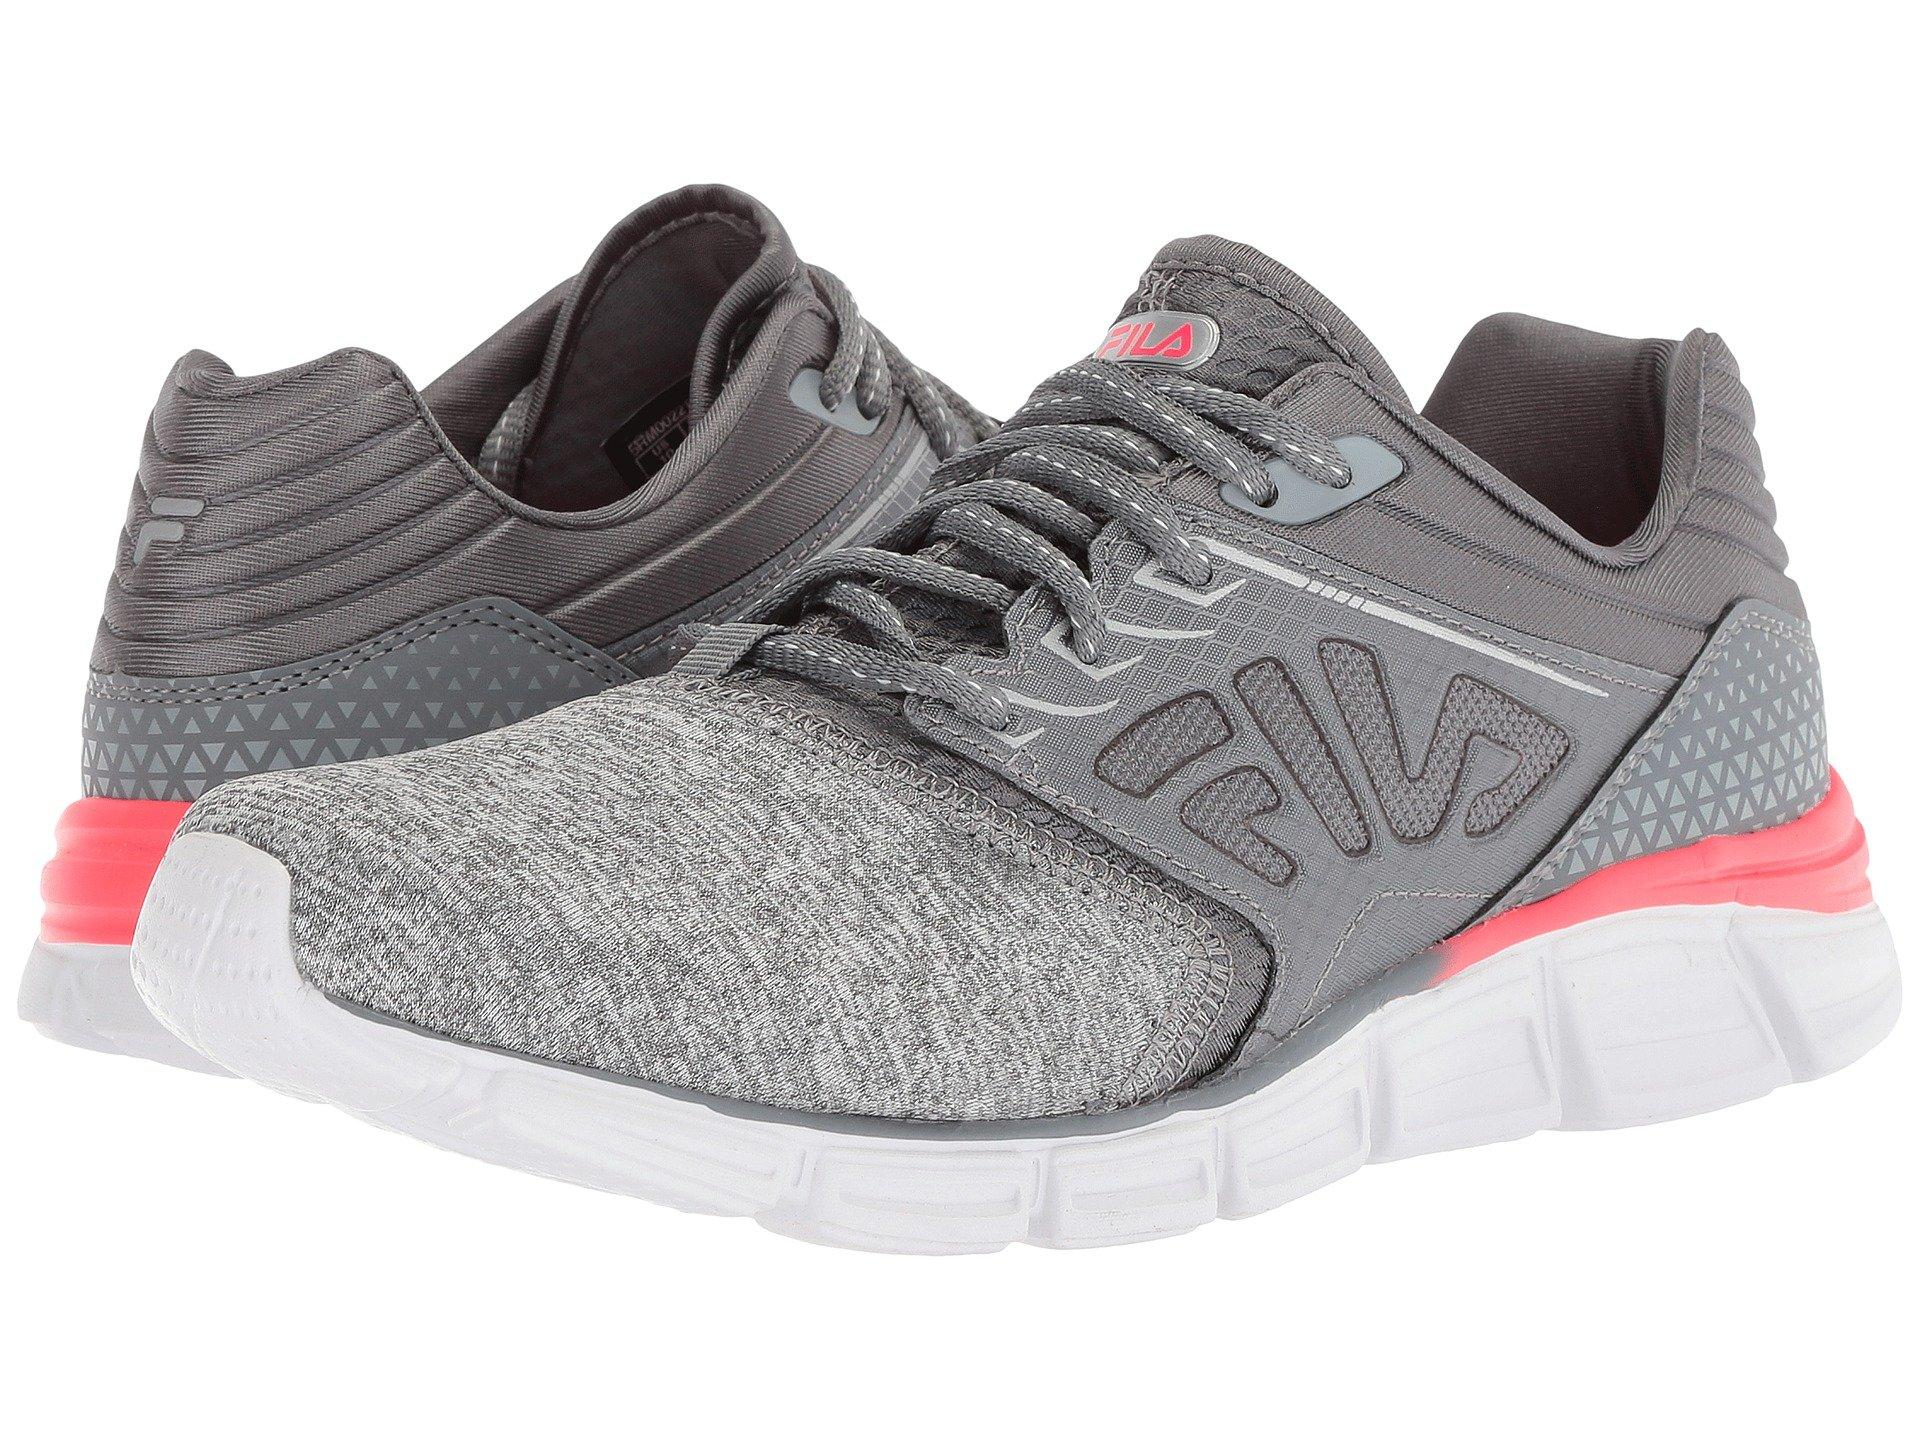 6e8cd3923683 9089494. Make a run for it in the FILA® Memory Multiswift 2 Running  sneakers. Heathered knit upper with synthetic overlays for support. Lace-up  closure.